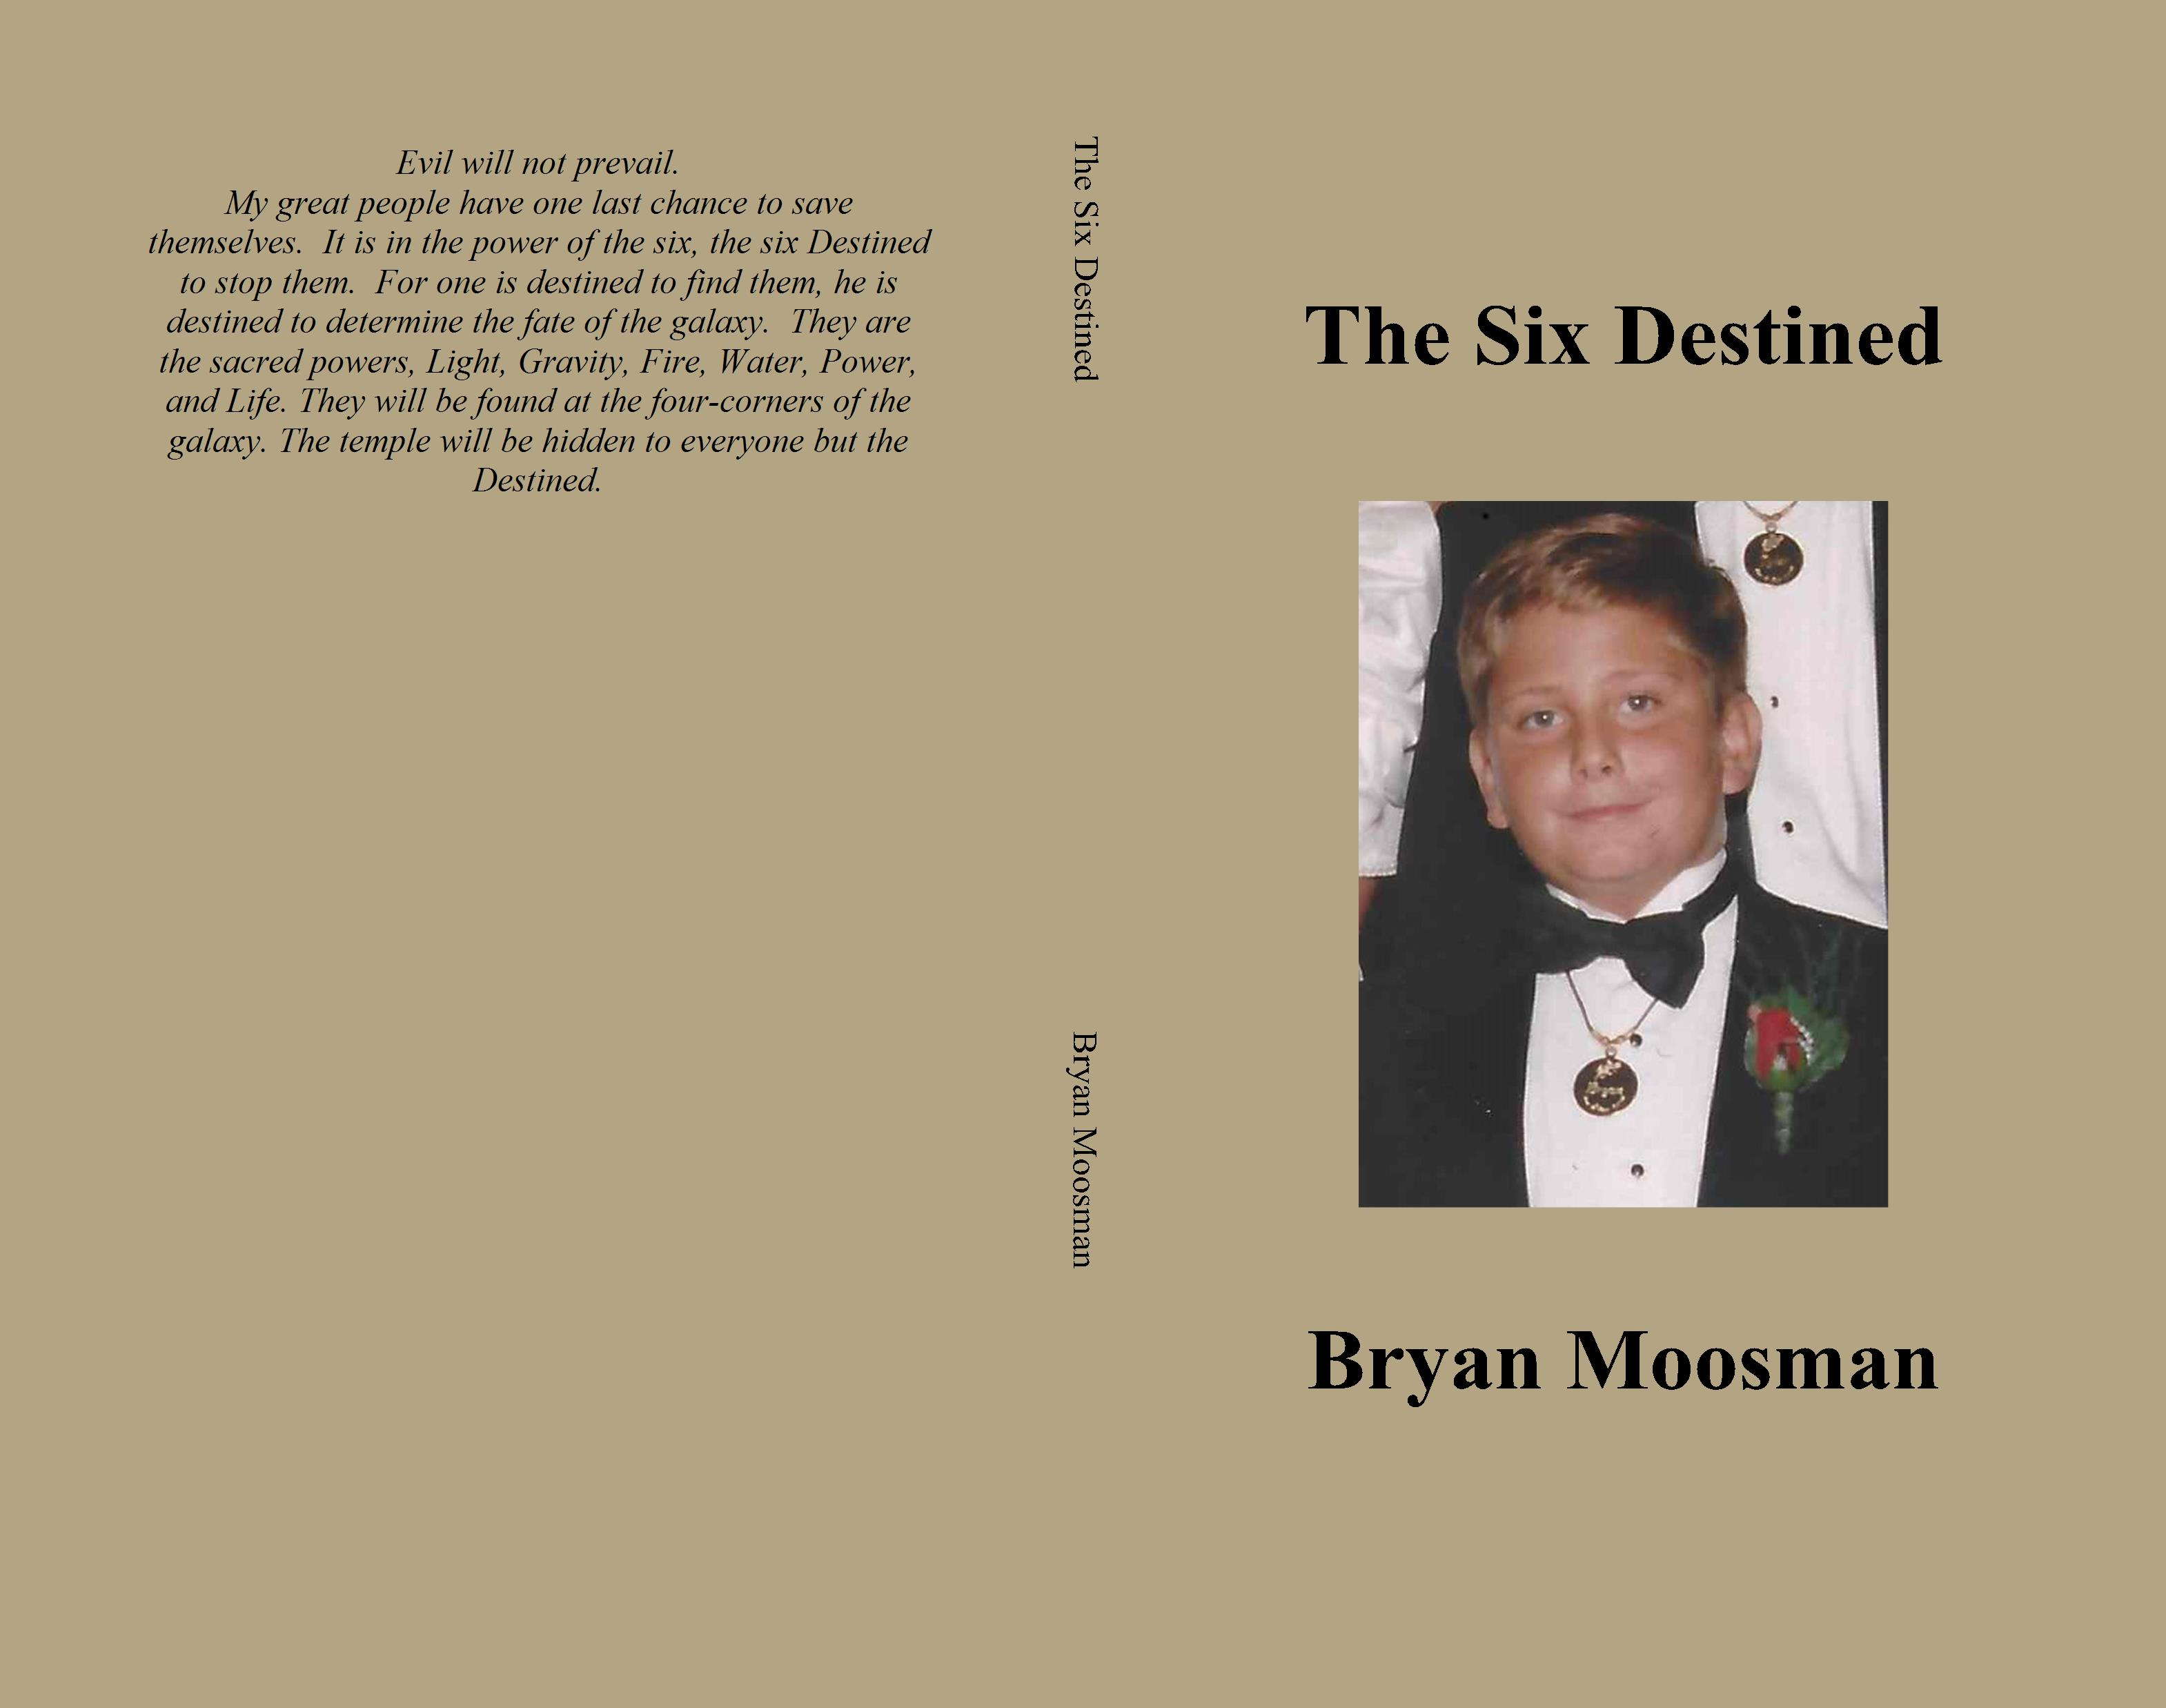 The Six Destined cover image